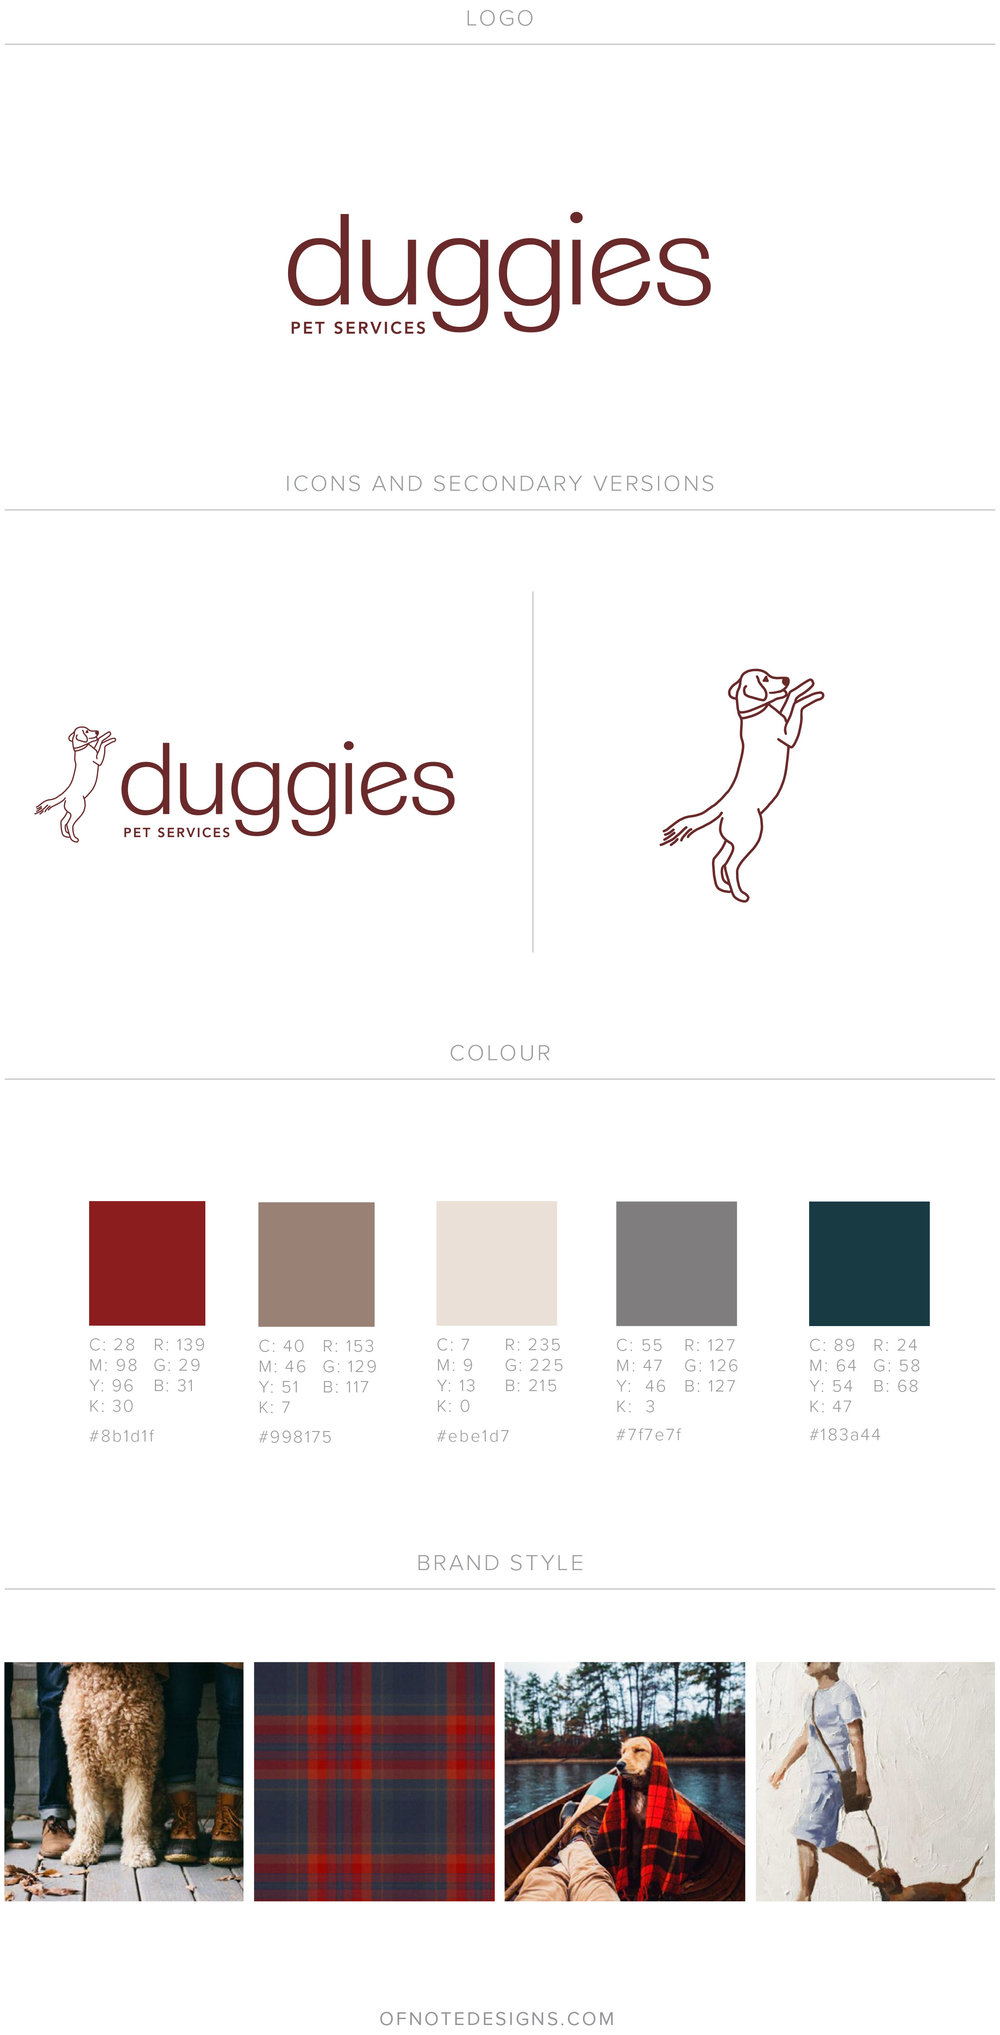 Brand Summary_Duggies Pet Services.jpg